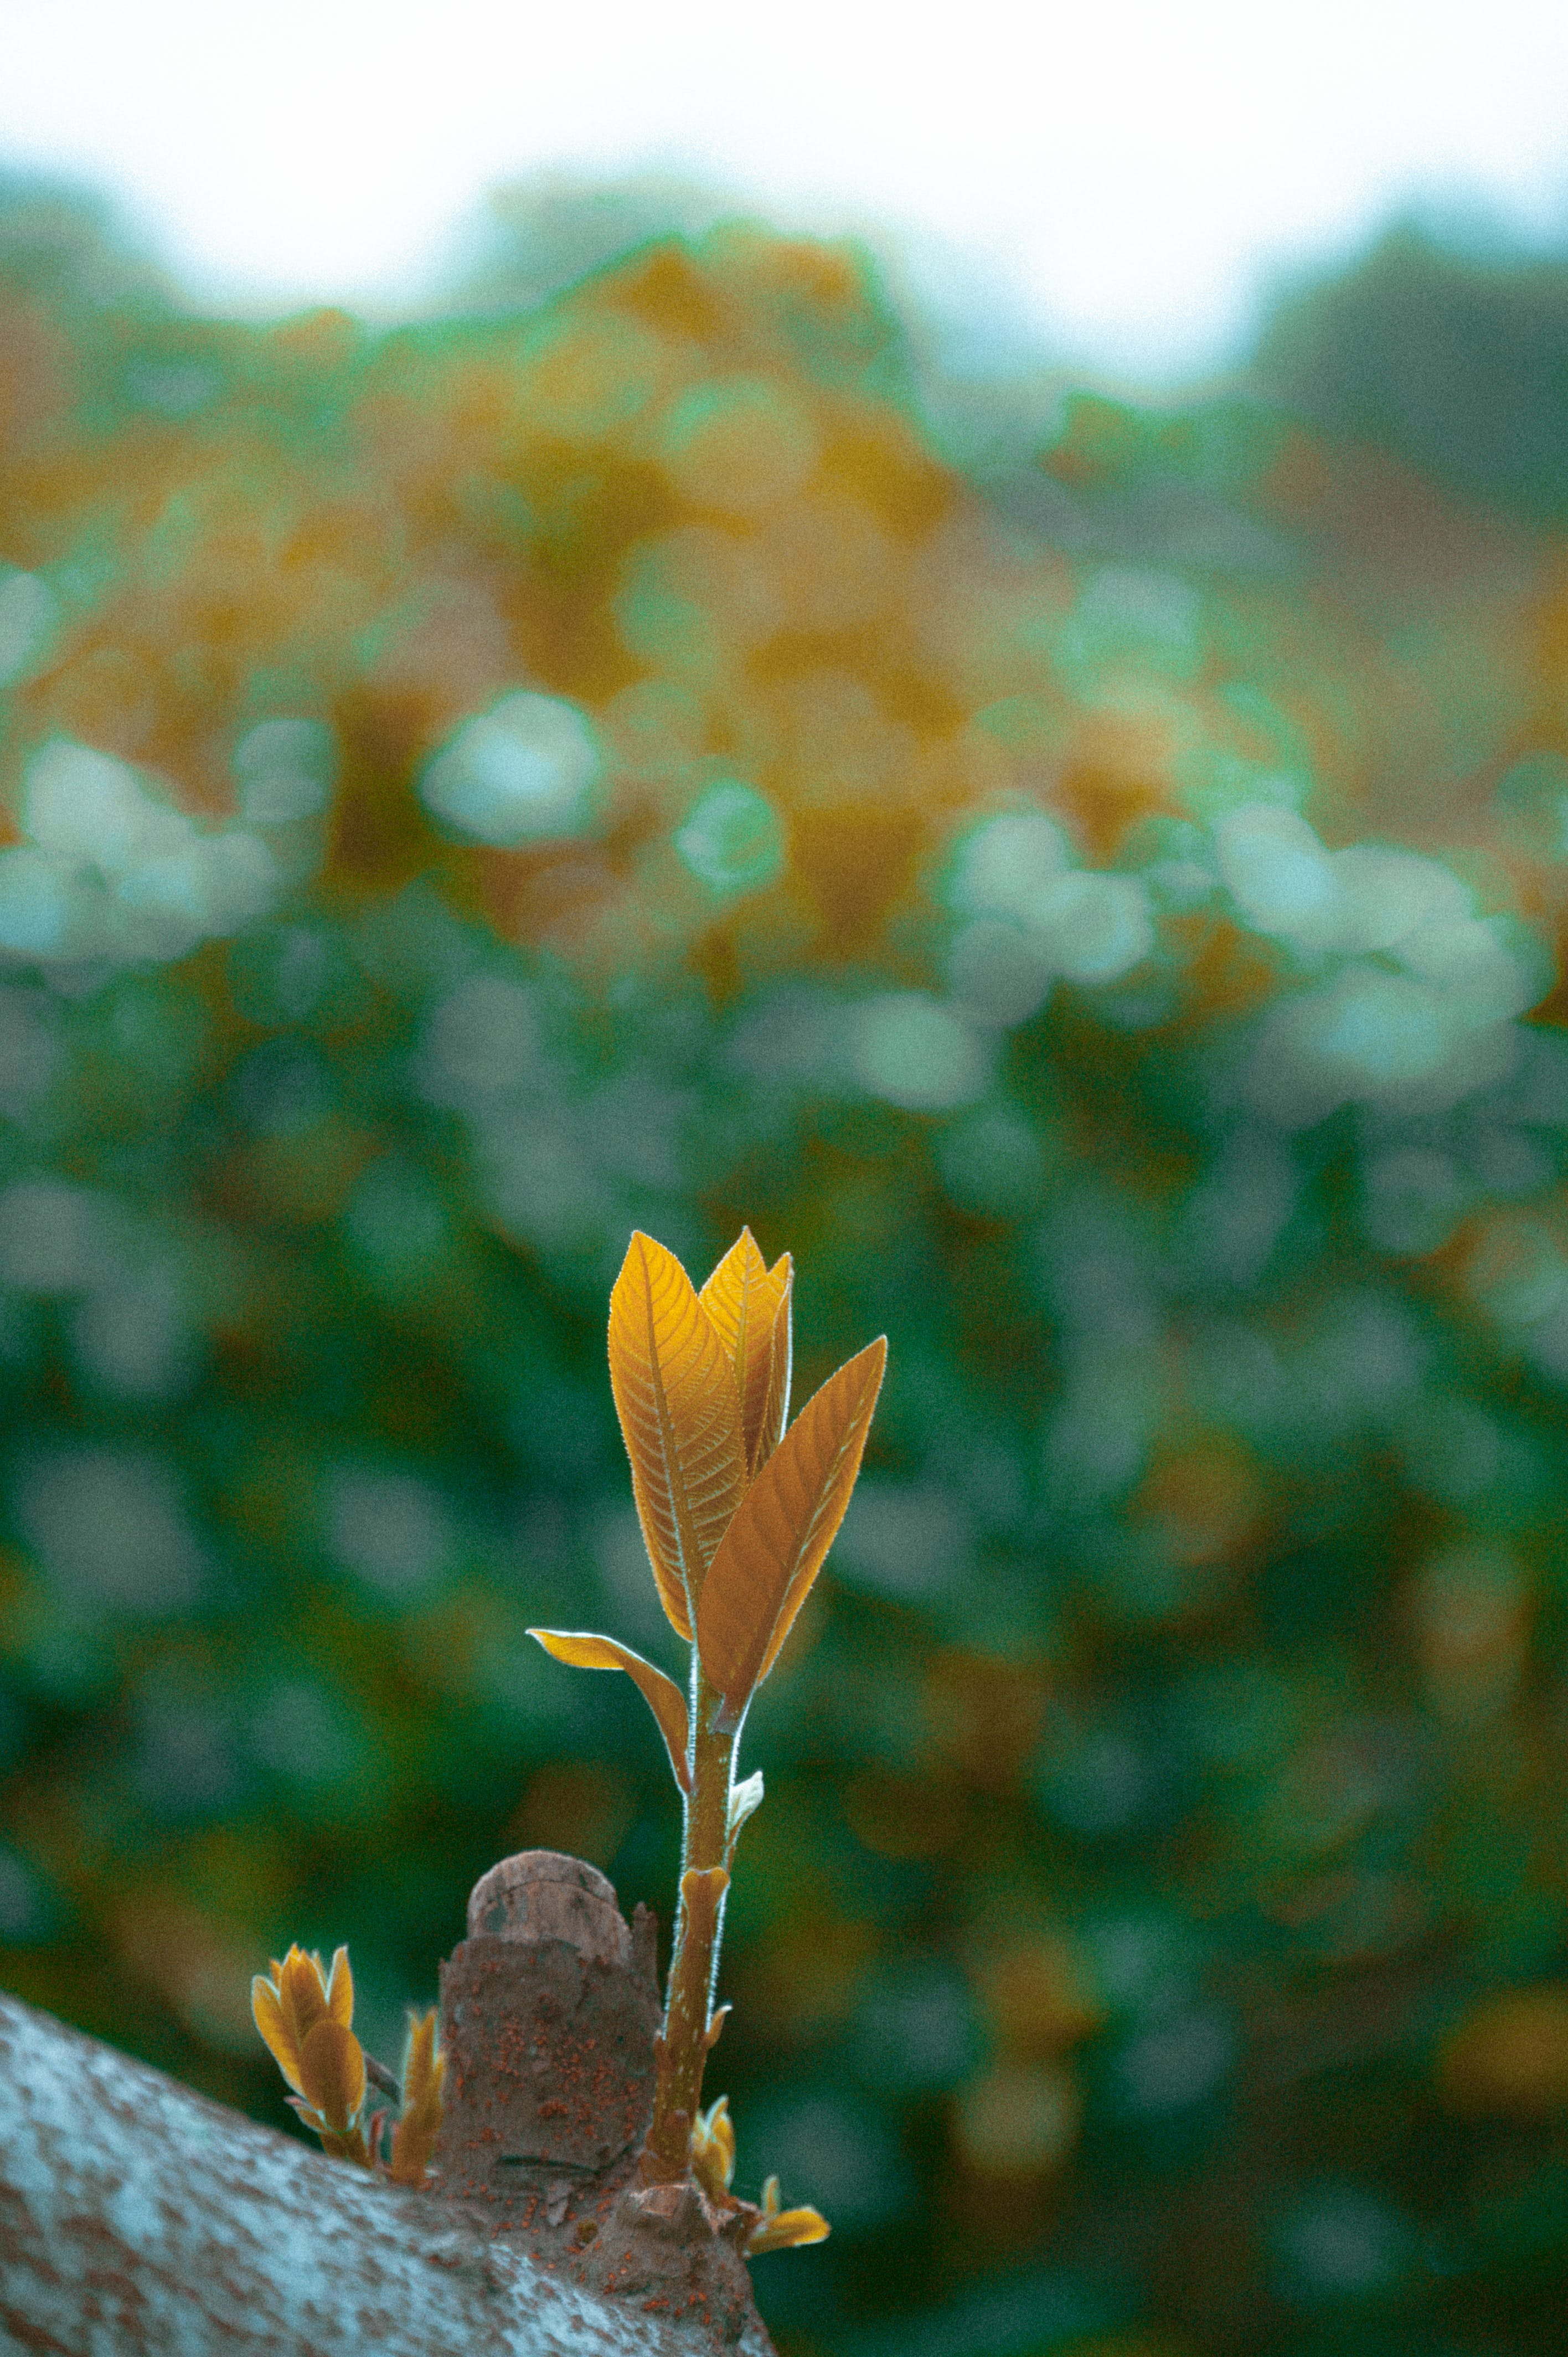 Selected Focus Photography Of Brown Leafed Plant